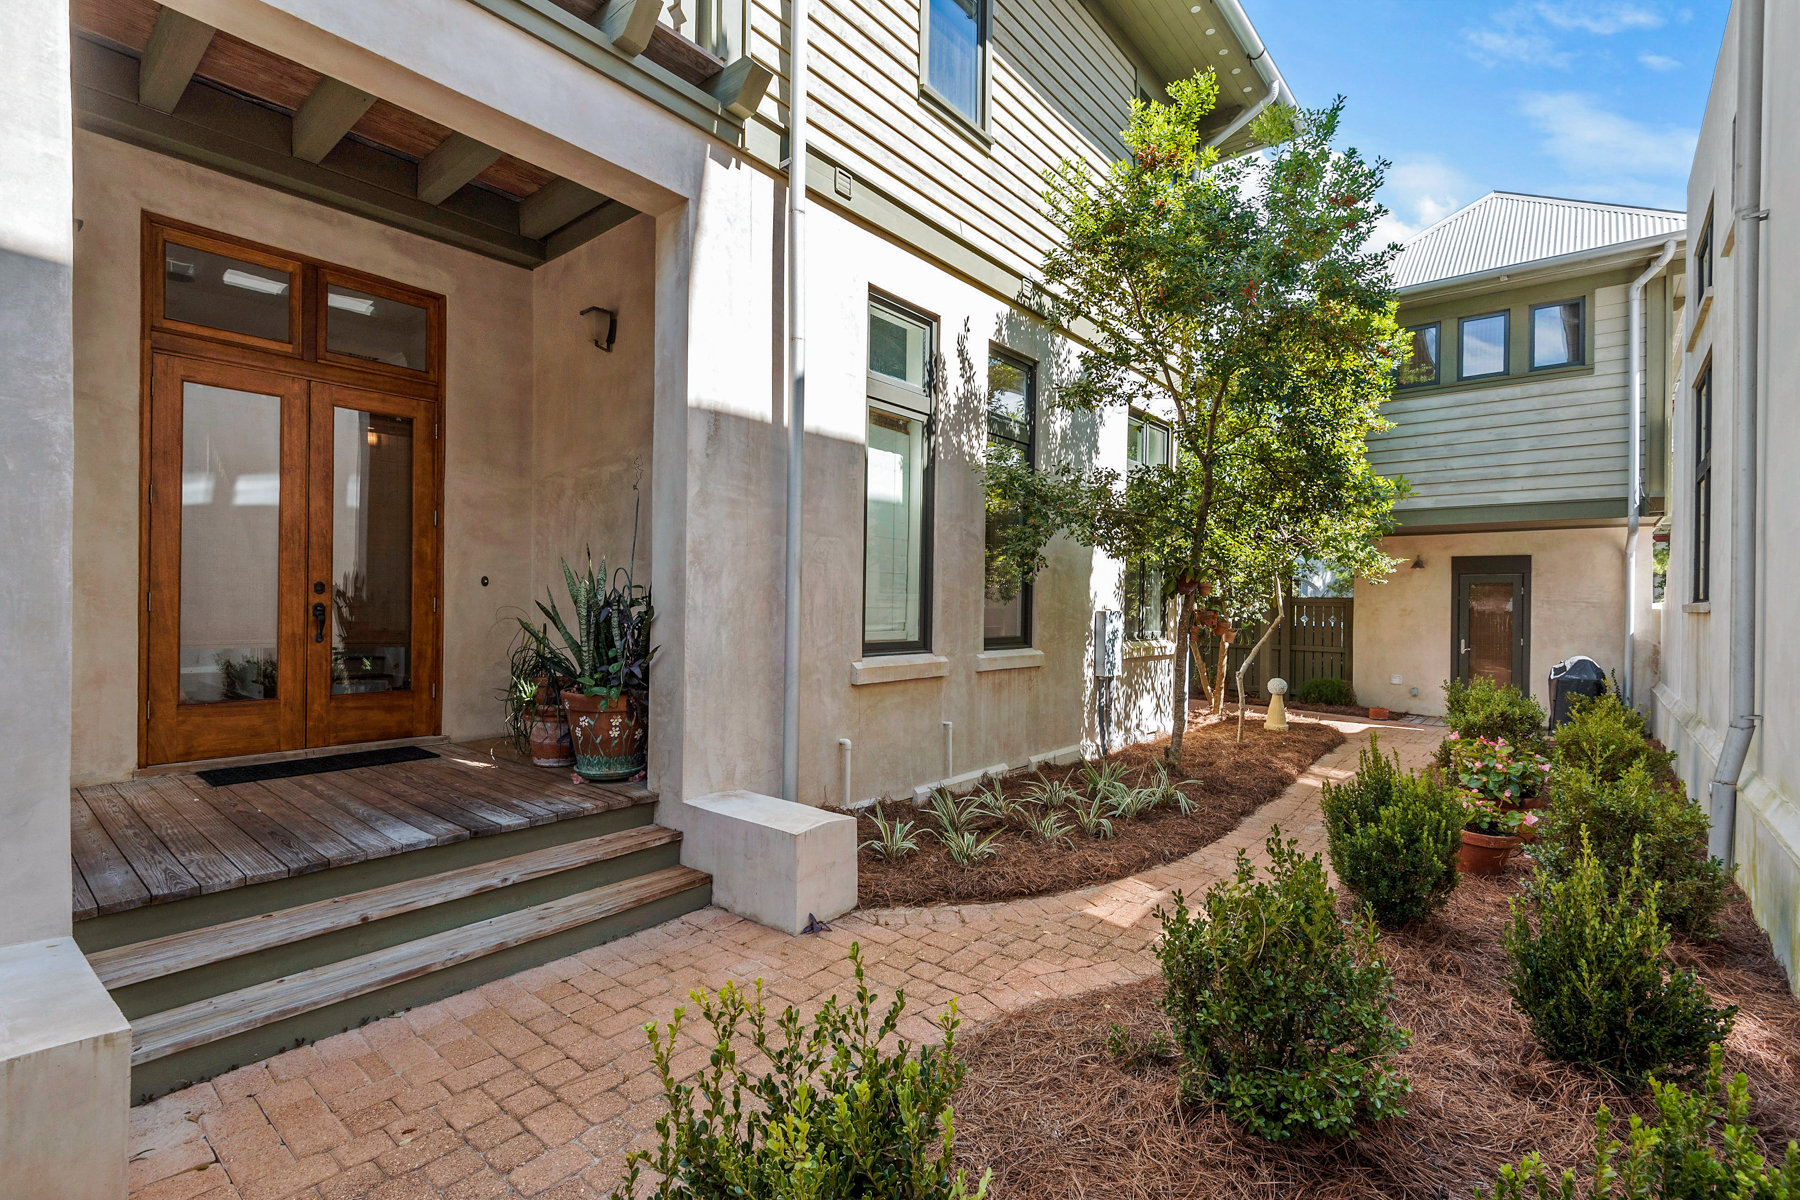 Single Family Home for Sale at LIVE THAT FLORIDA LIFESTYLE IN SOUGHT AFTER ROSEMARY BEACH 143 W Water Street Rosemary Beach, Rosemary Beach, Florida, 32461 United States